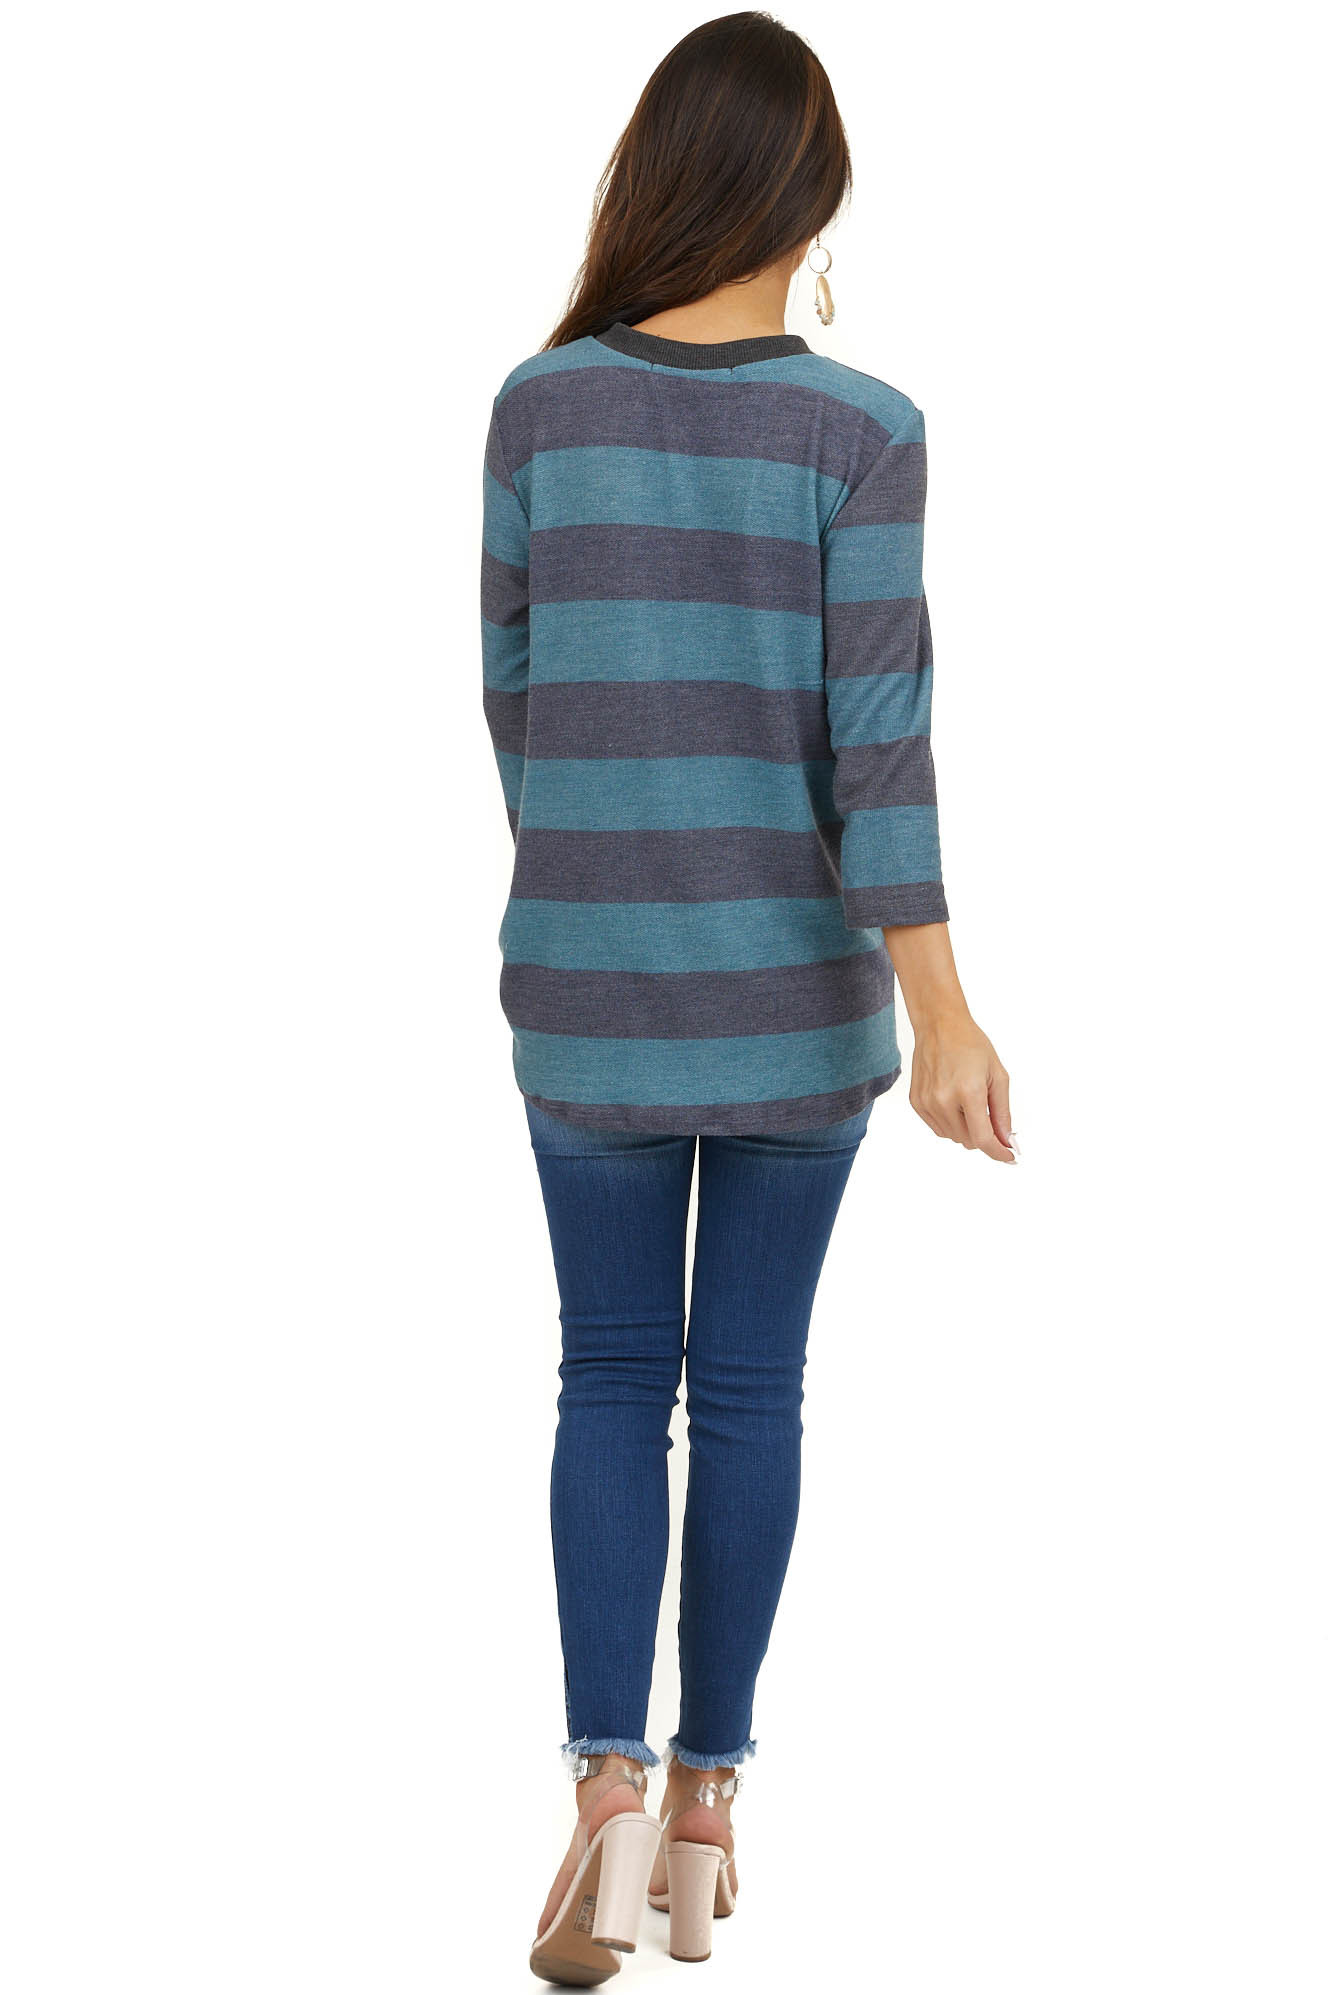 Dark Teal and Charcoal Striped 3/4 Sleeve Sweater with Twist